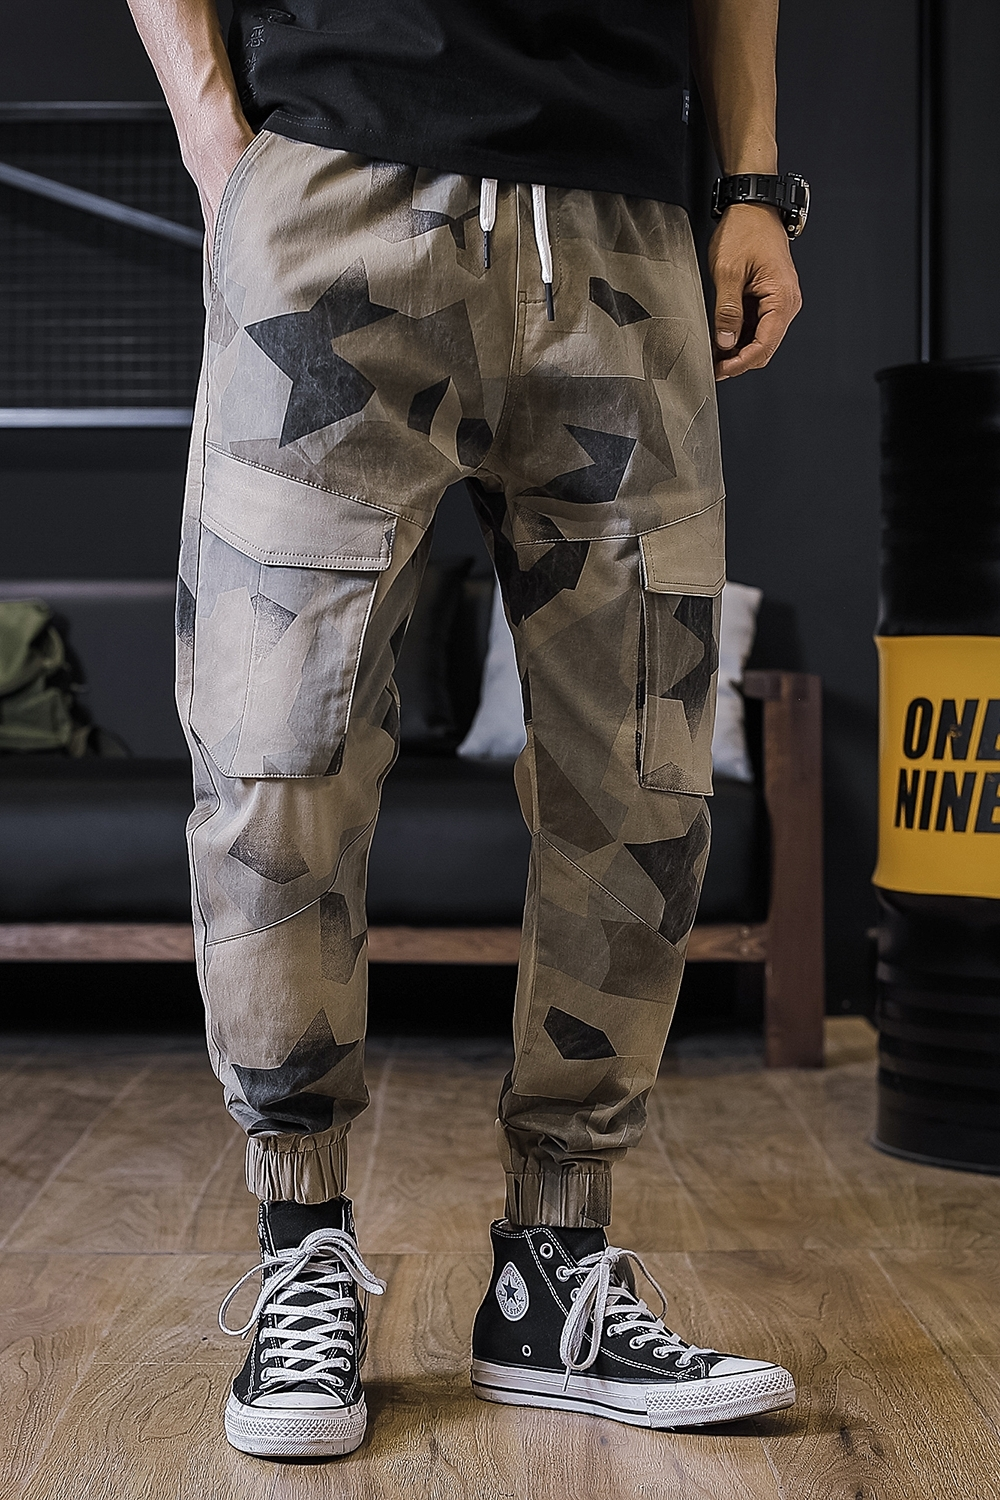 2019 New Pattern cargo Pants tactical trousers men Fashion Joker Printing Camouflage joggers Bound Feet Pants Free shipping in Cargo Pants from Men 39 s Clothing